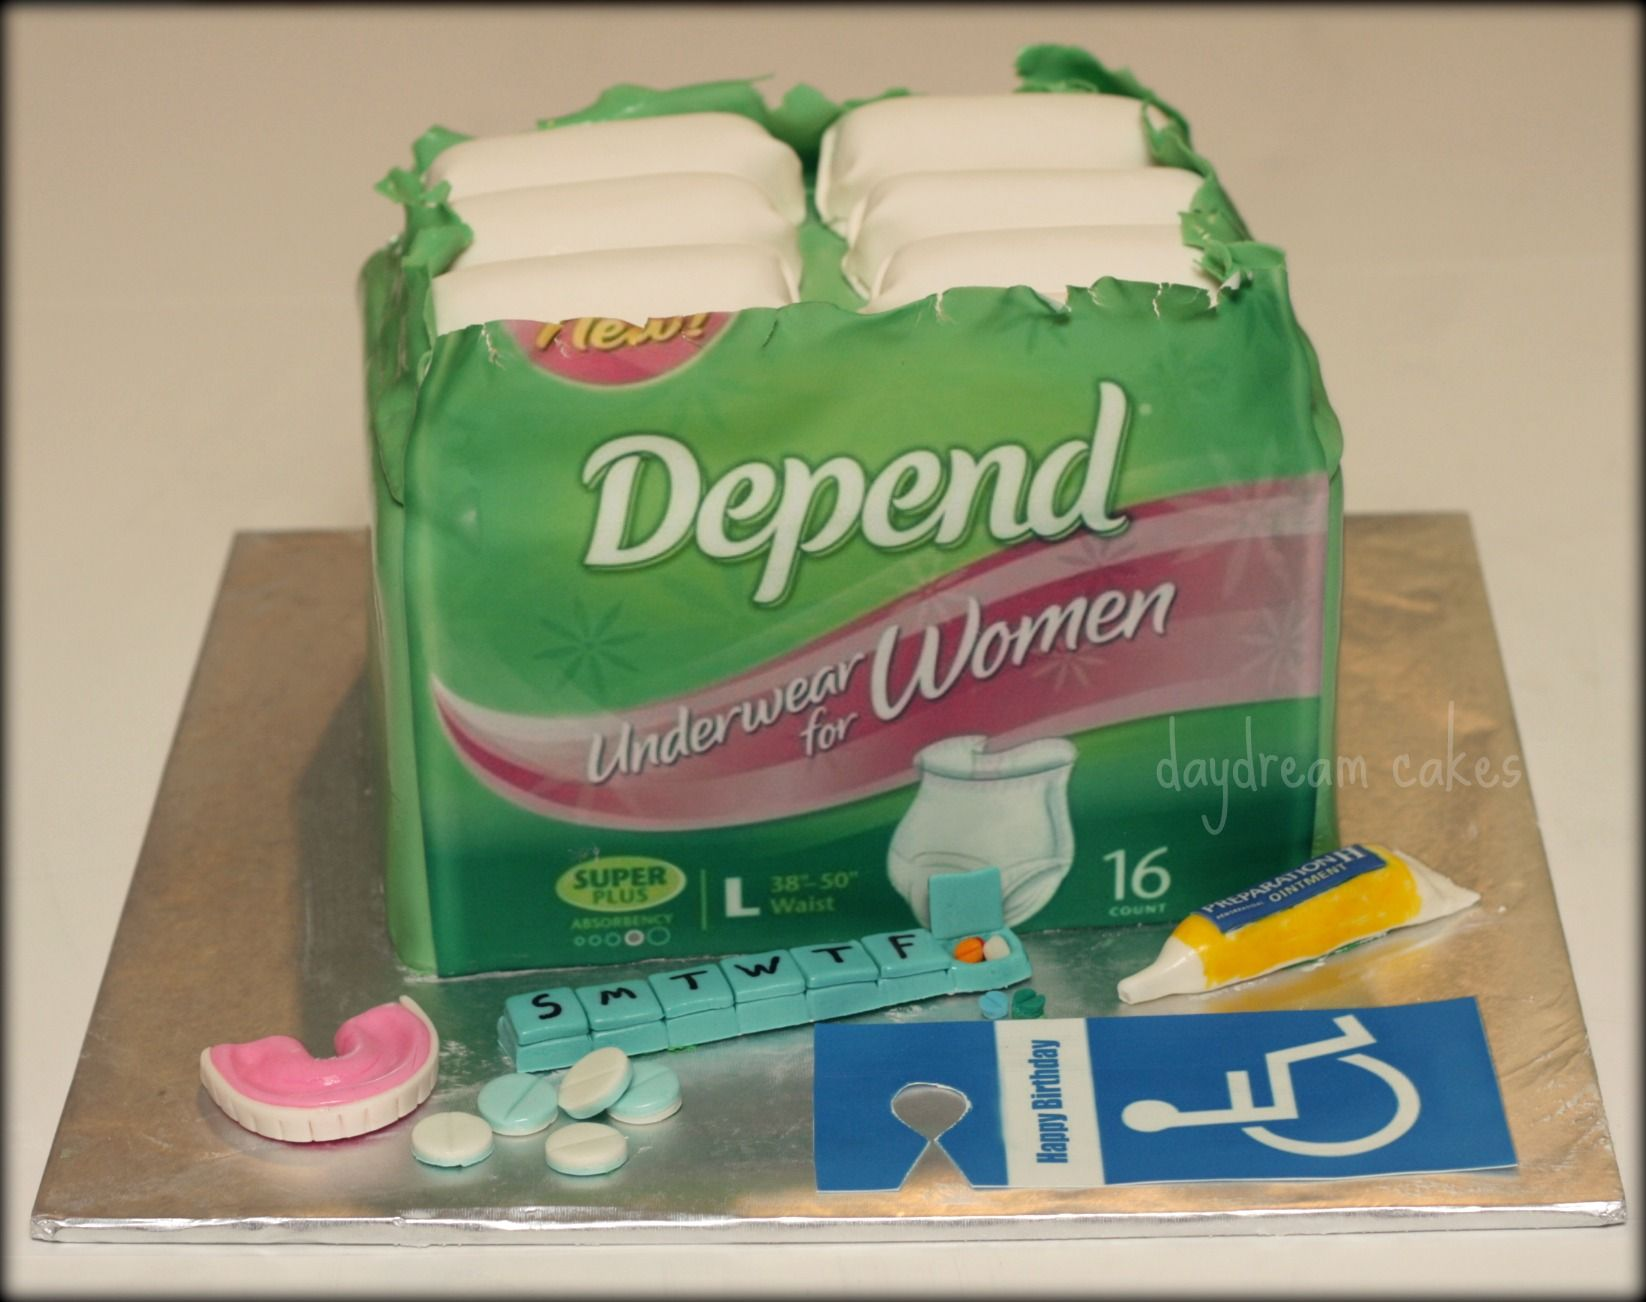 Depends cake for women Depend cake for a woman turning 50